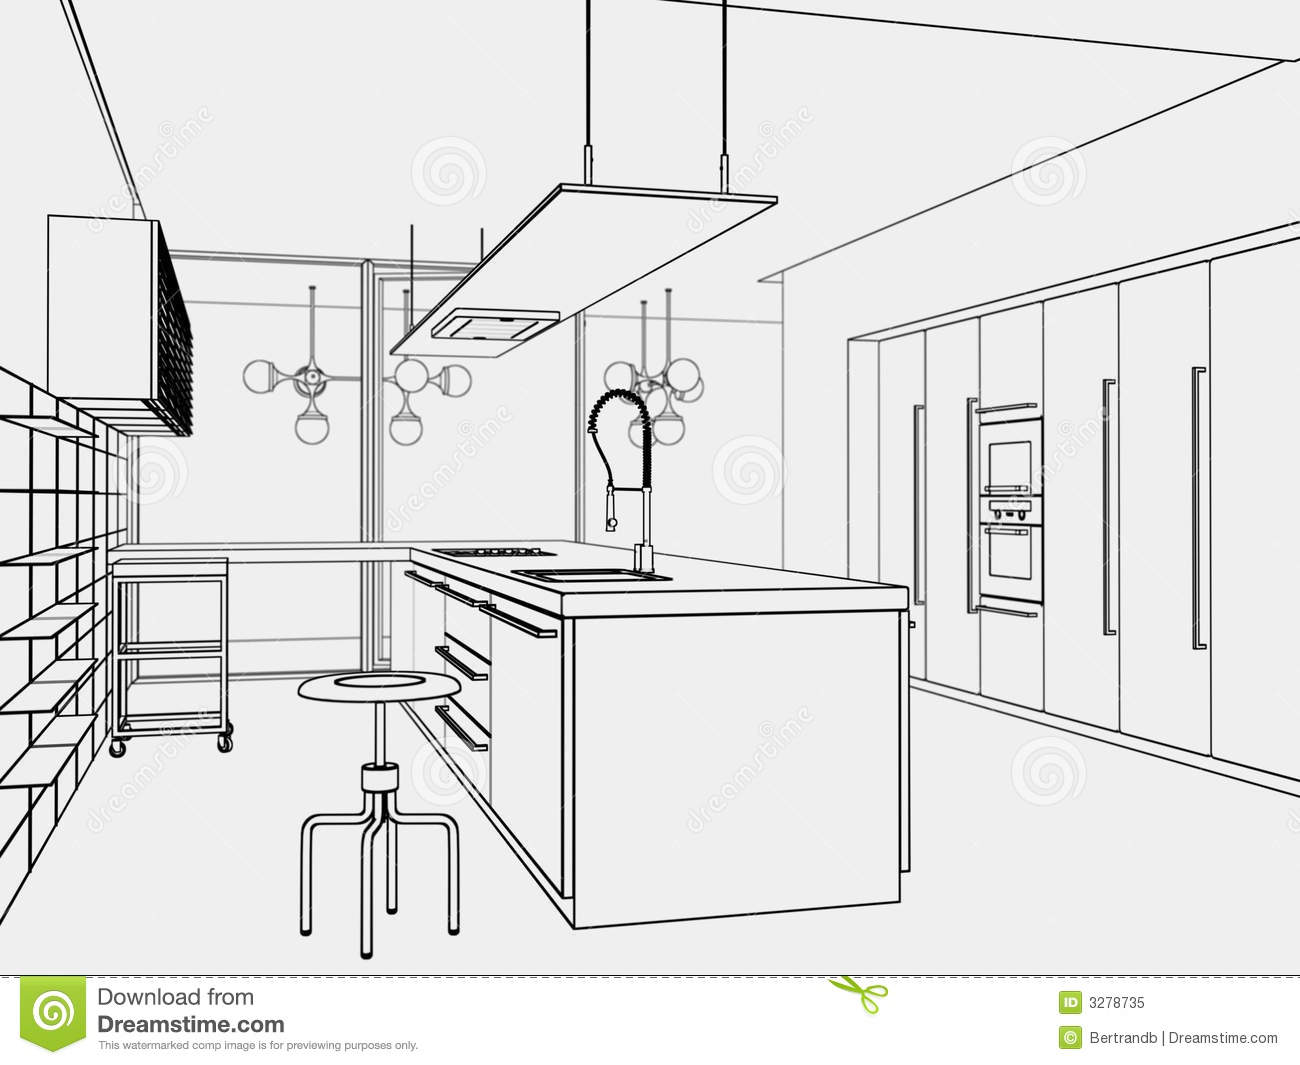 Kitchen toon style stock illustration illustration of for Decor outline